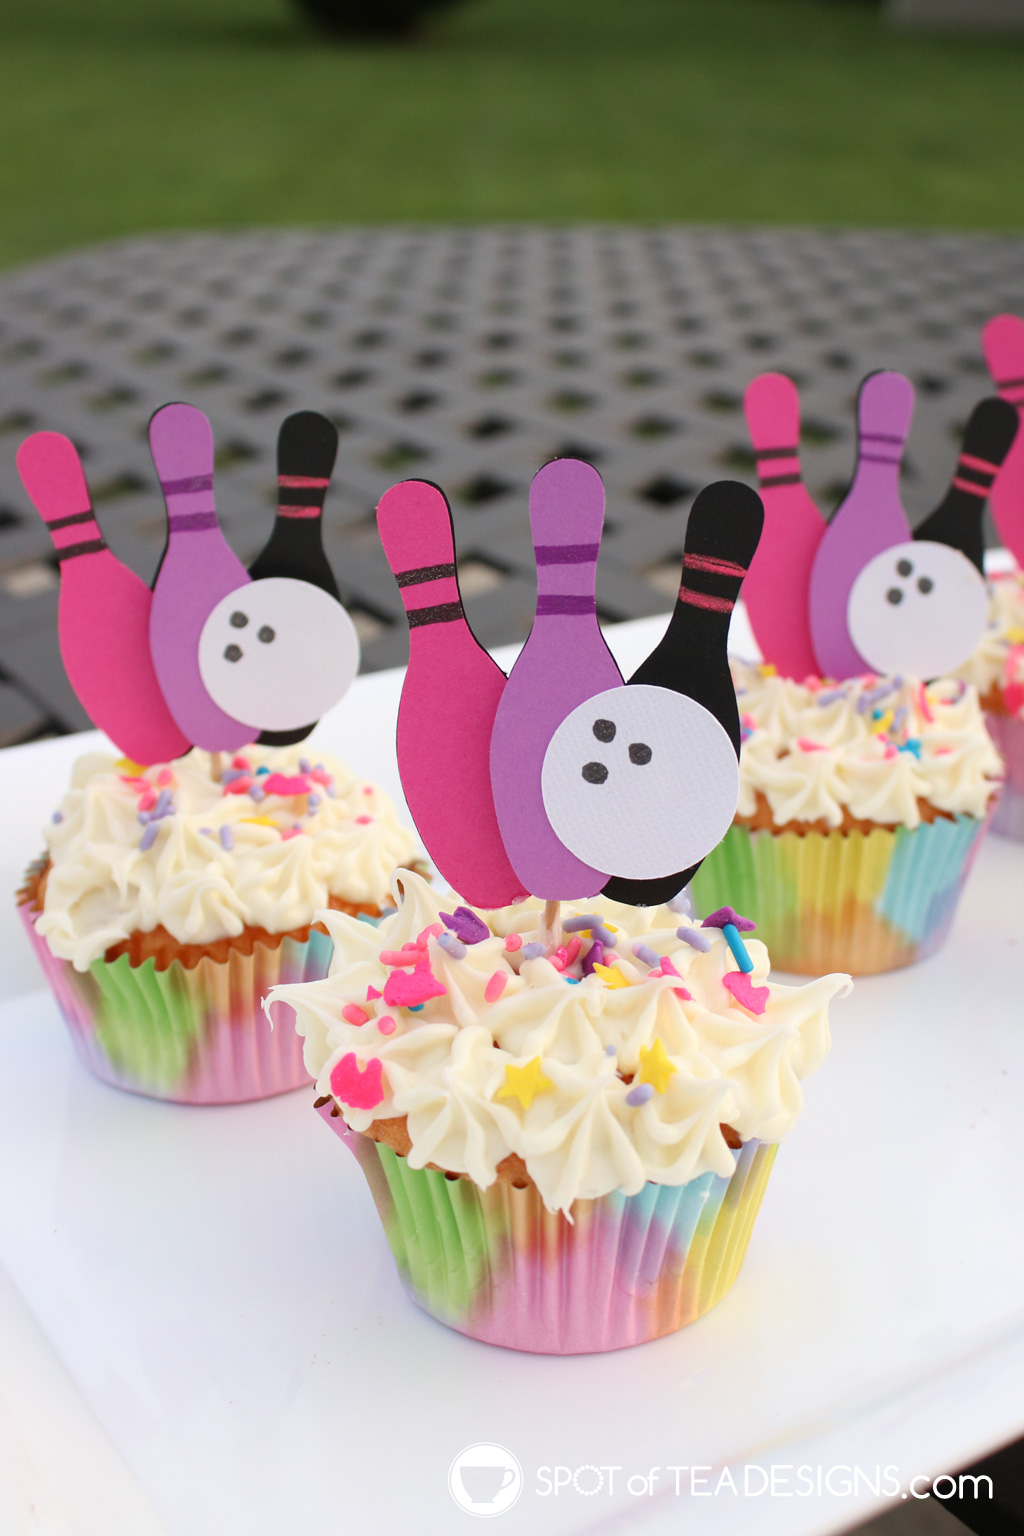 girls bowling party cupcake toppers | spotofteadesigns.com